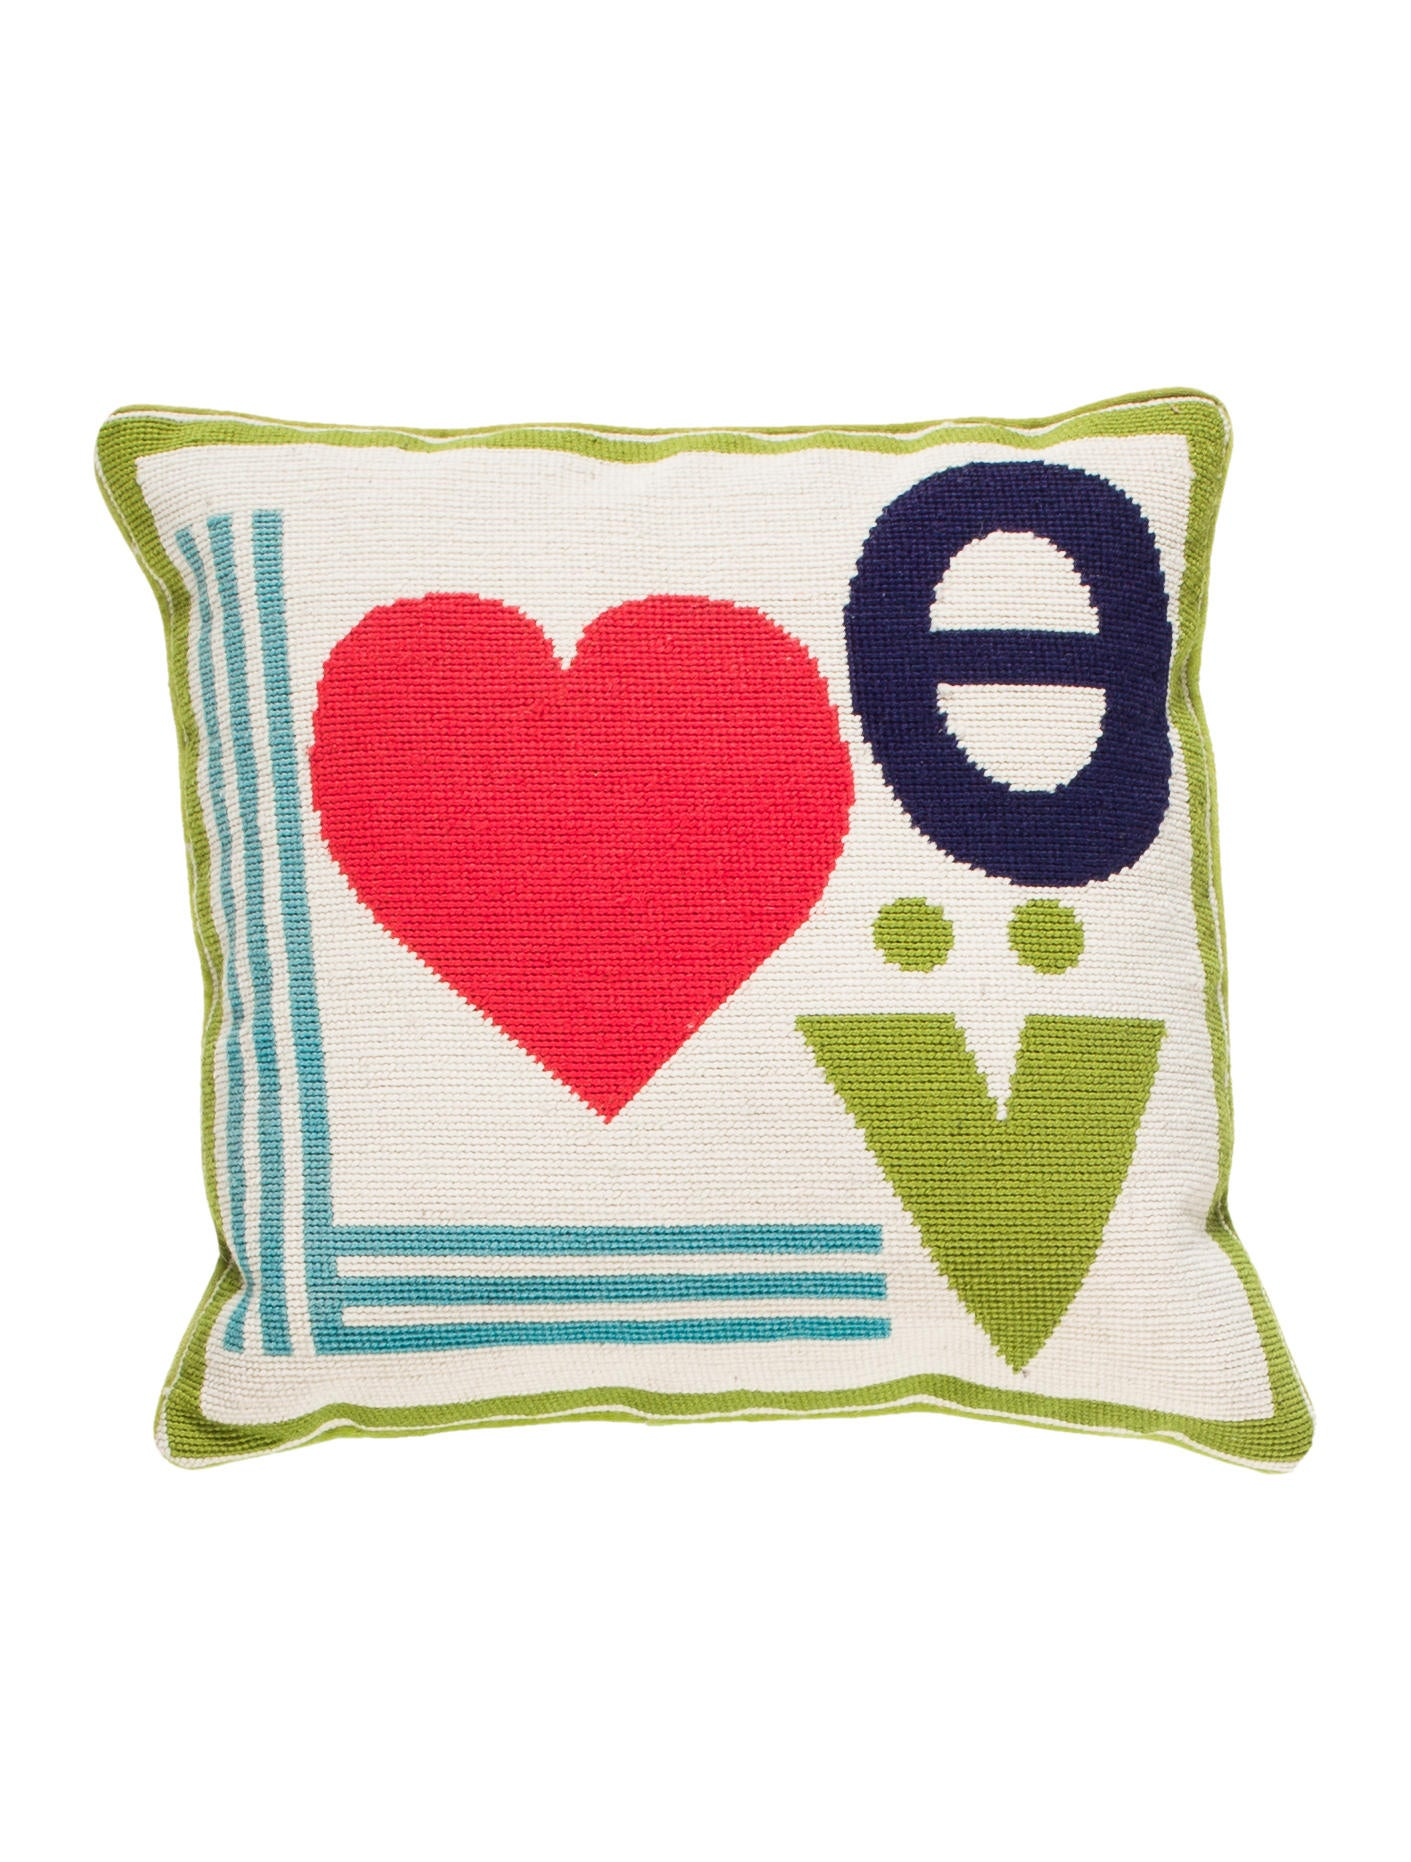 Throw Pillows Justice : Jonathan Adler Mod Love Needlepoint Throw Pillow - Pillows And Throws - JTADL20662 The RealReal